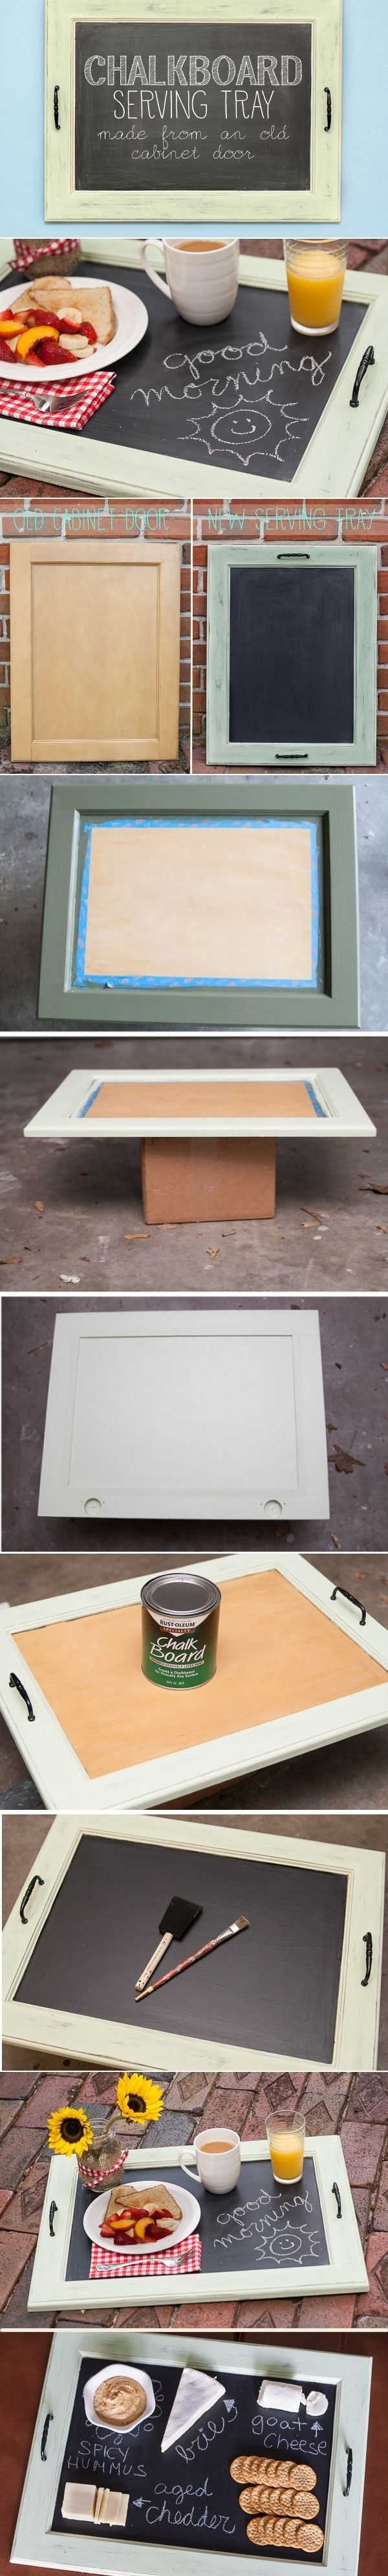 DIY Chalkboard Serving Tray--I could see my husband making this.